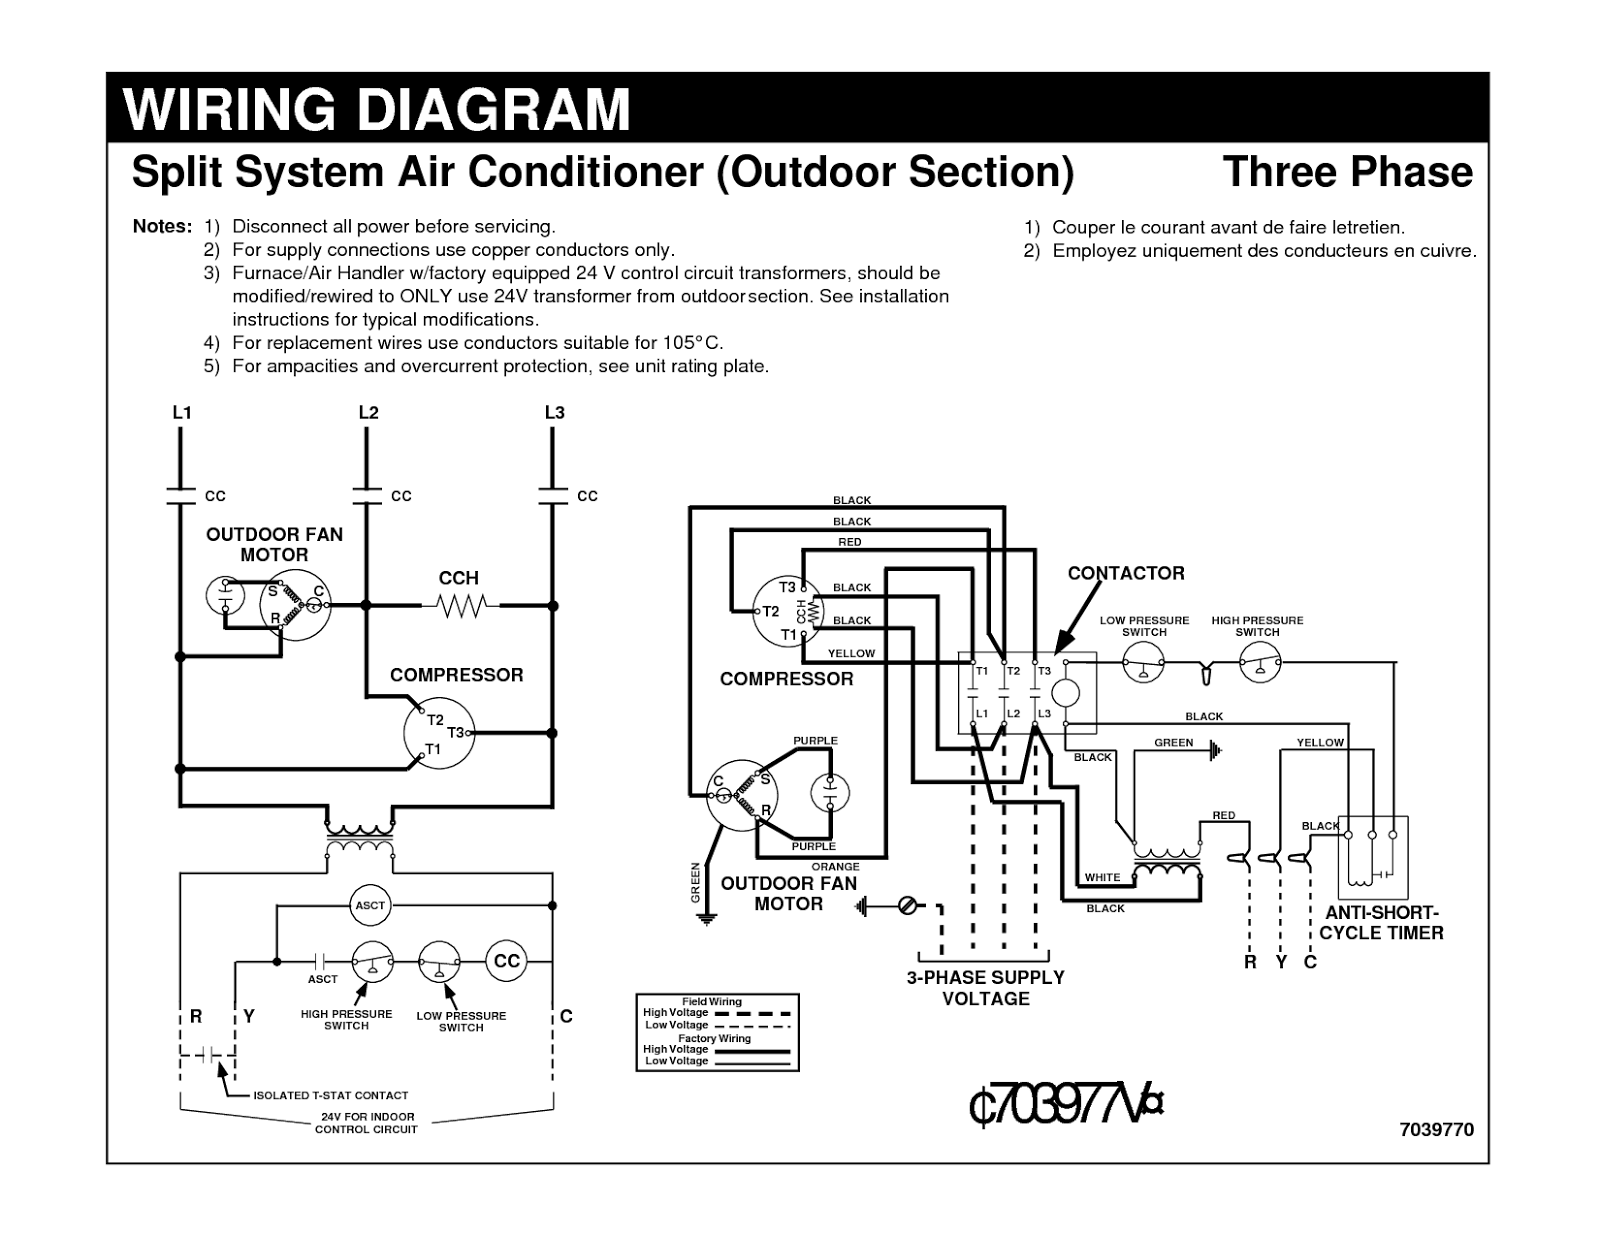 Electrical Wiring Diagrams For Air Conditioning Systems Part One System Basics Fig1